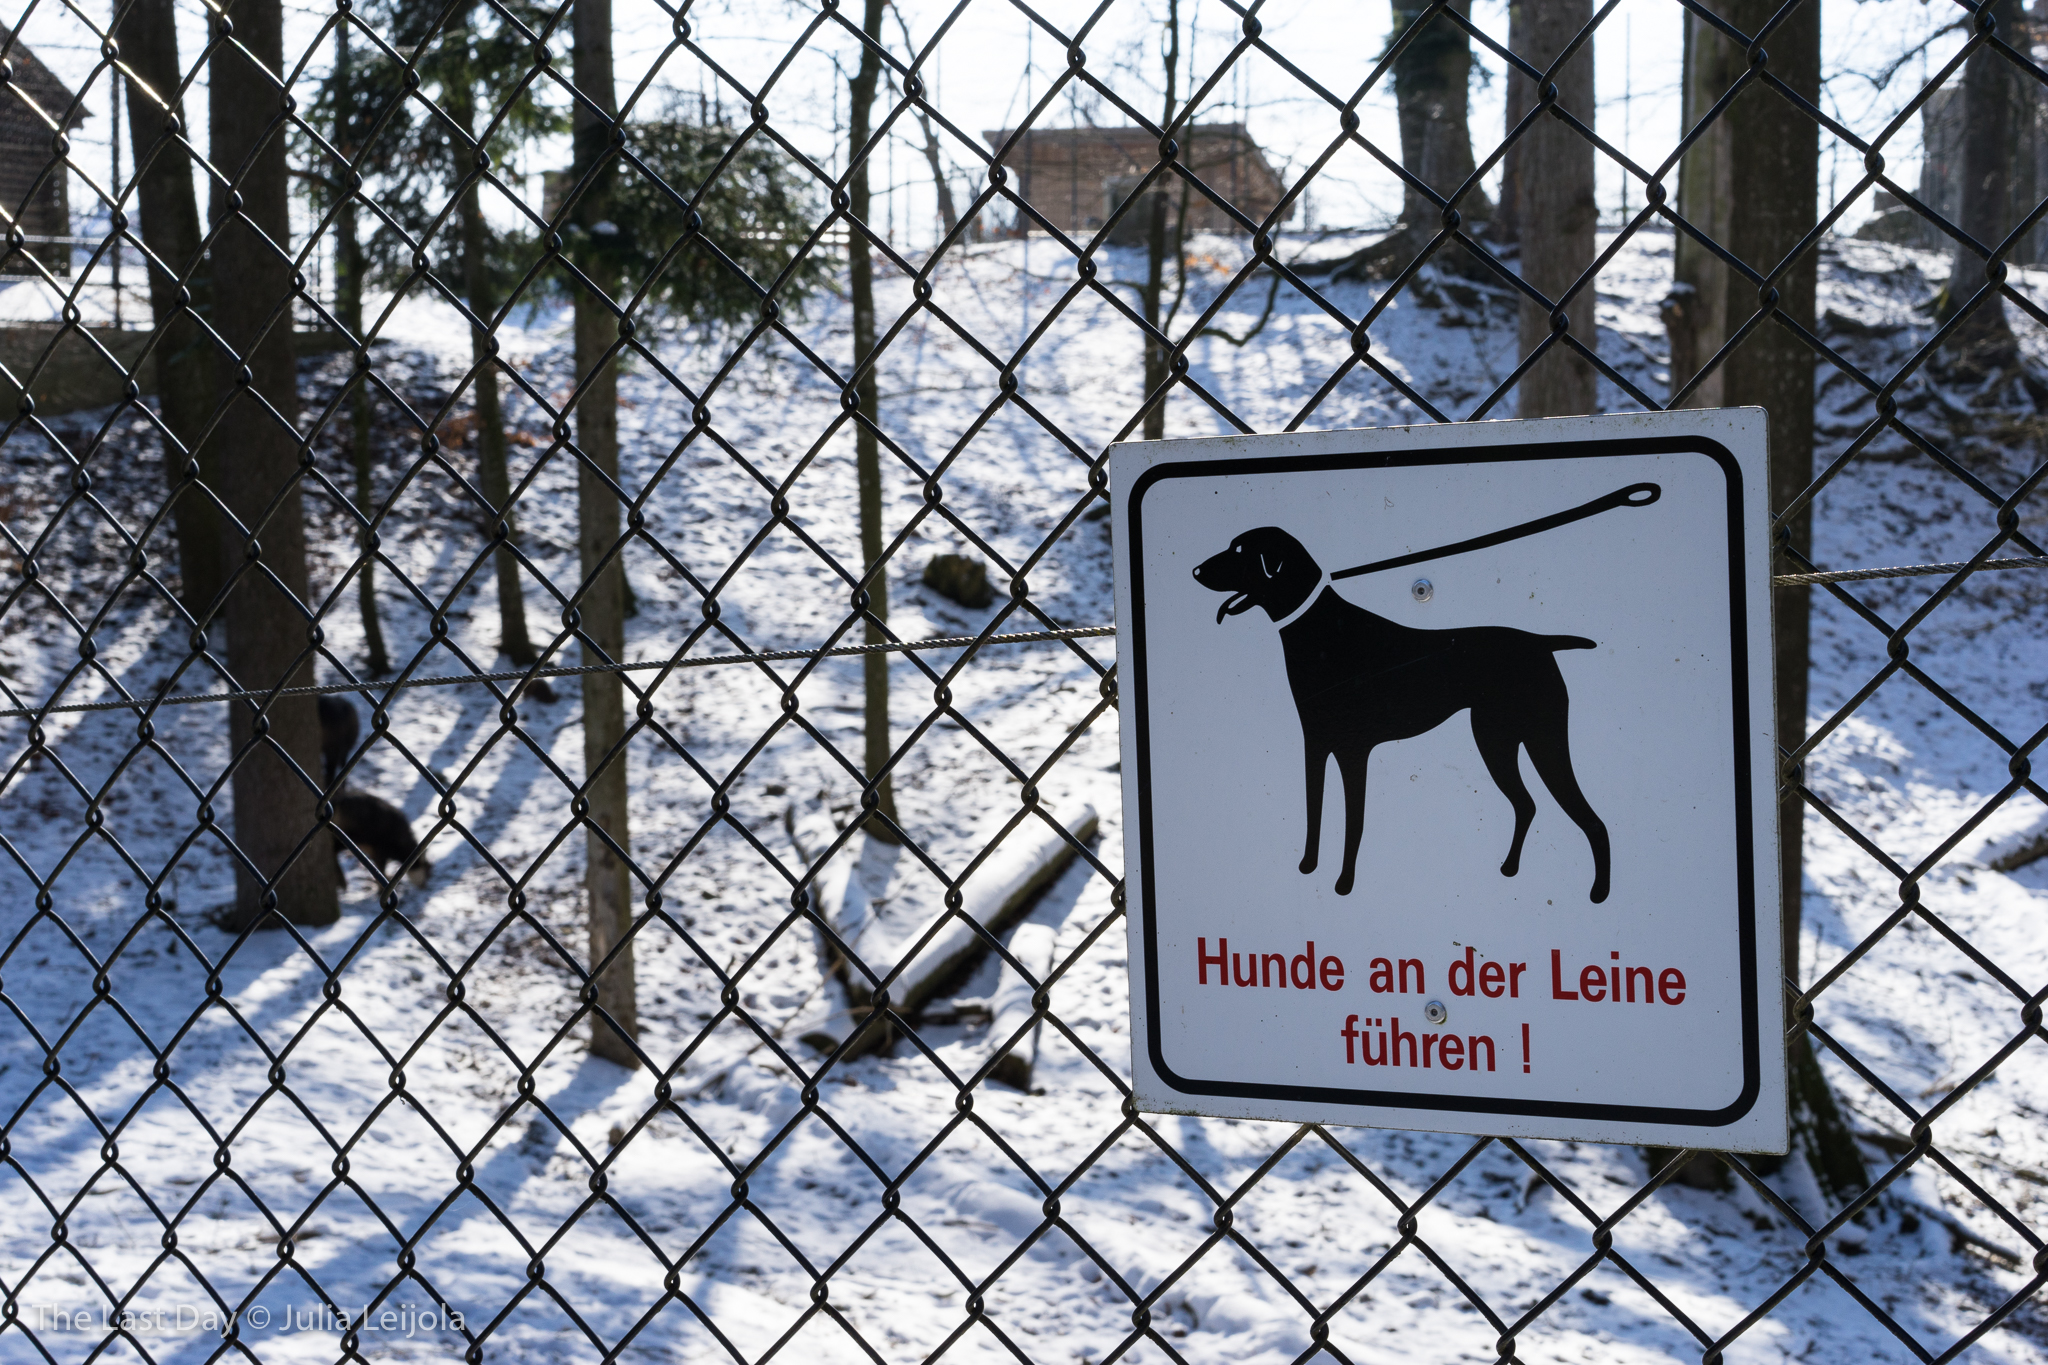 A sign telling people to keep their dogs on the lead is attached to the fence of an animal enclosure.